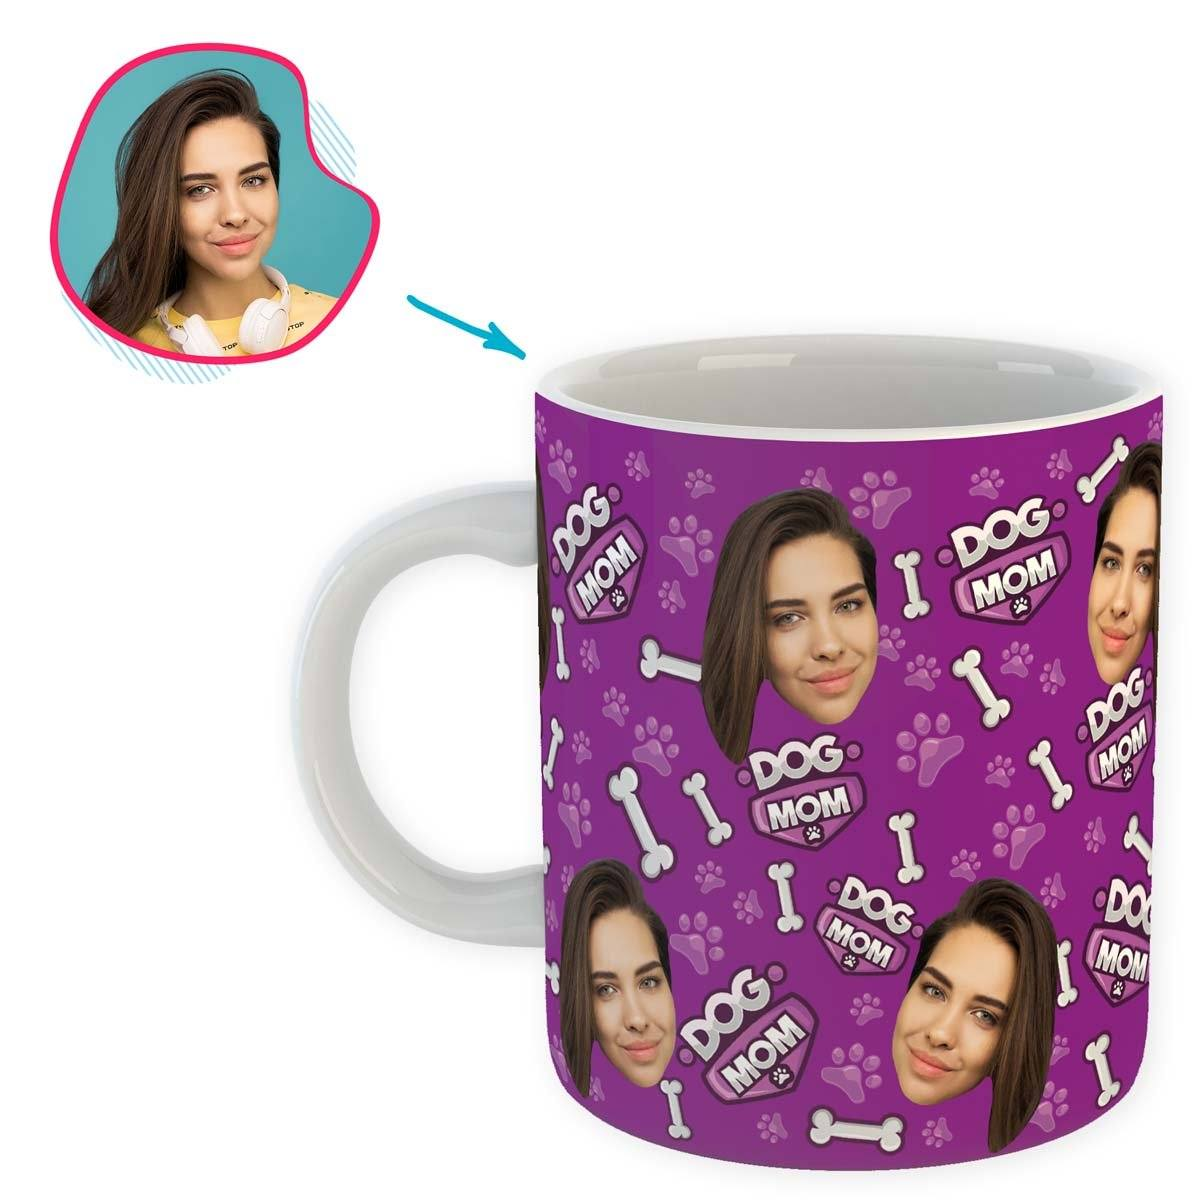 purple Dog Mom mug personalized with photo of face printed on it